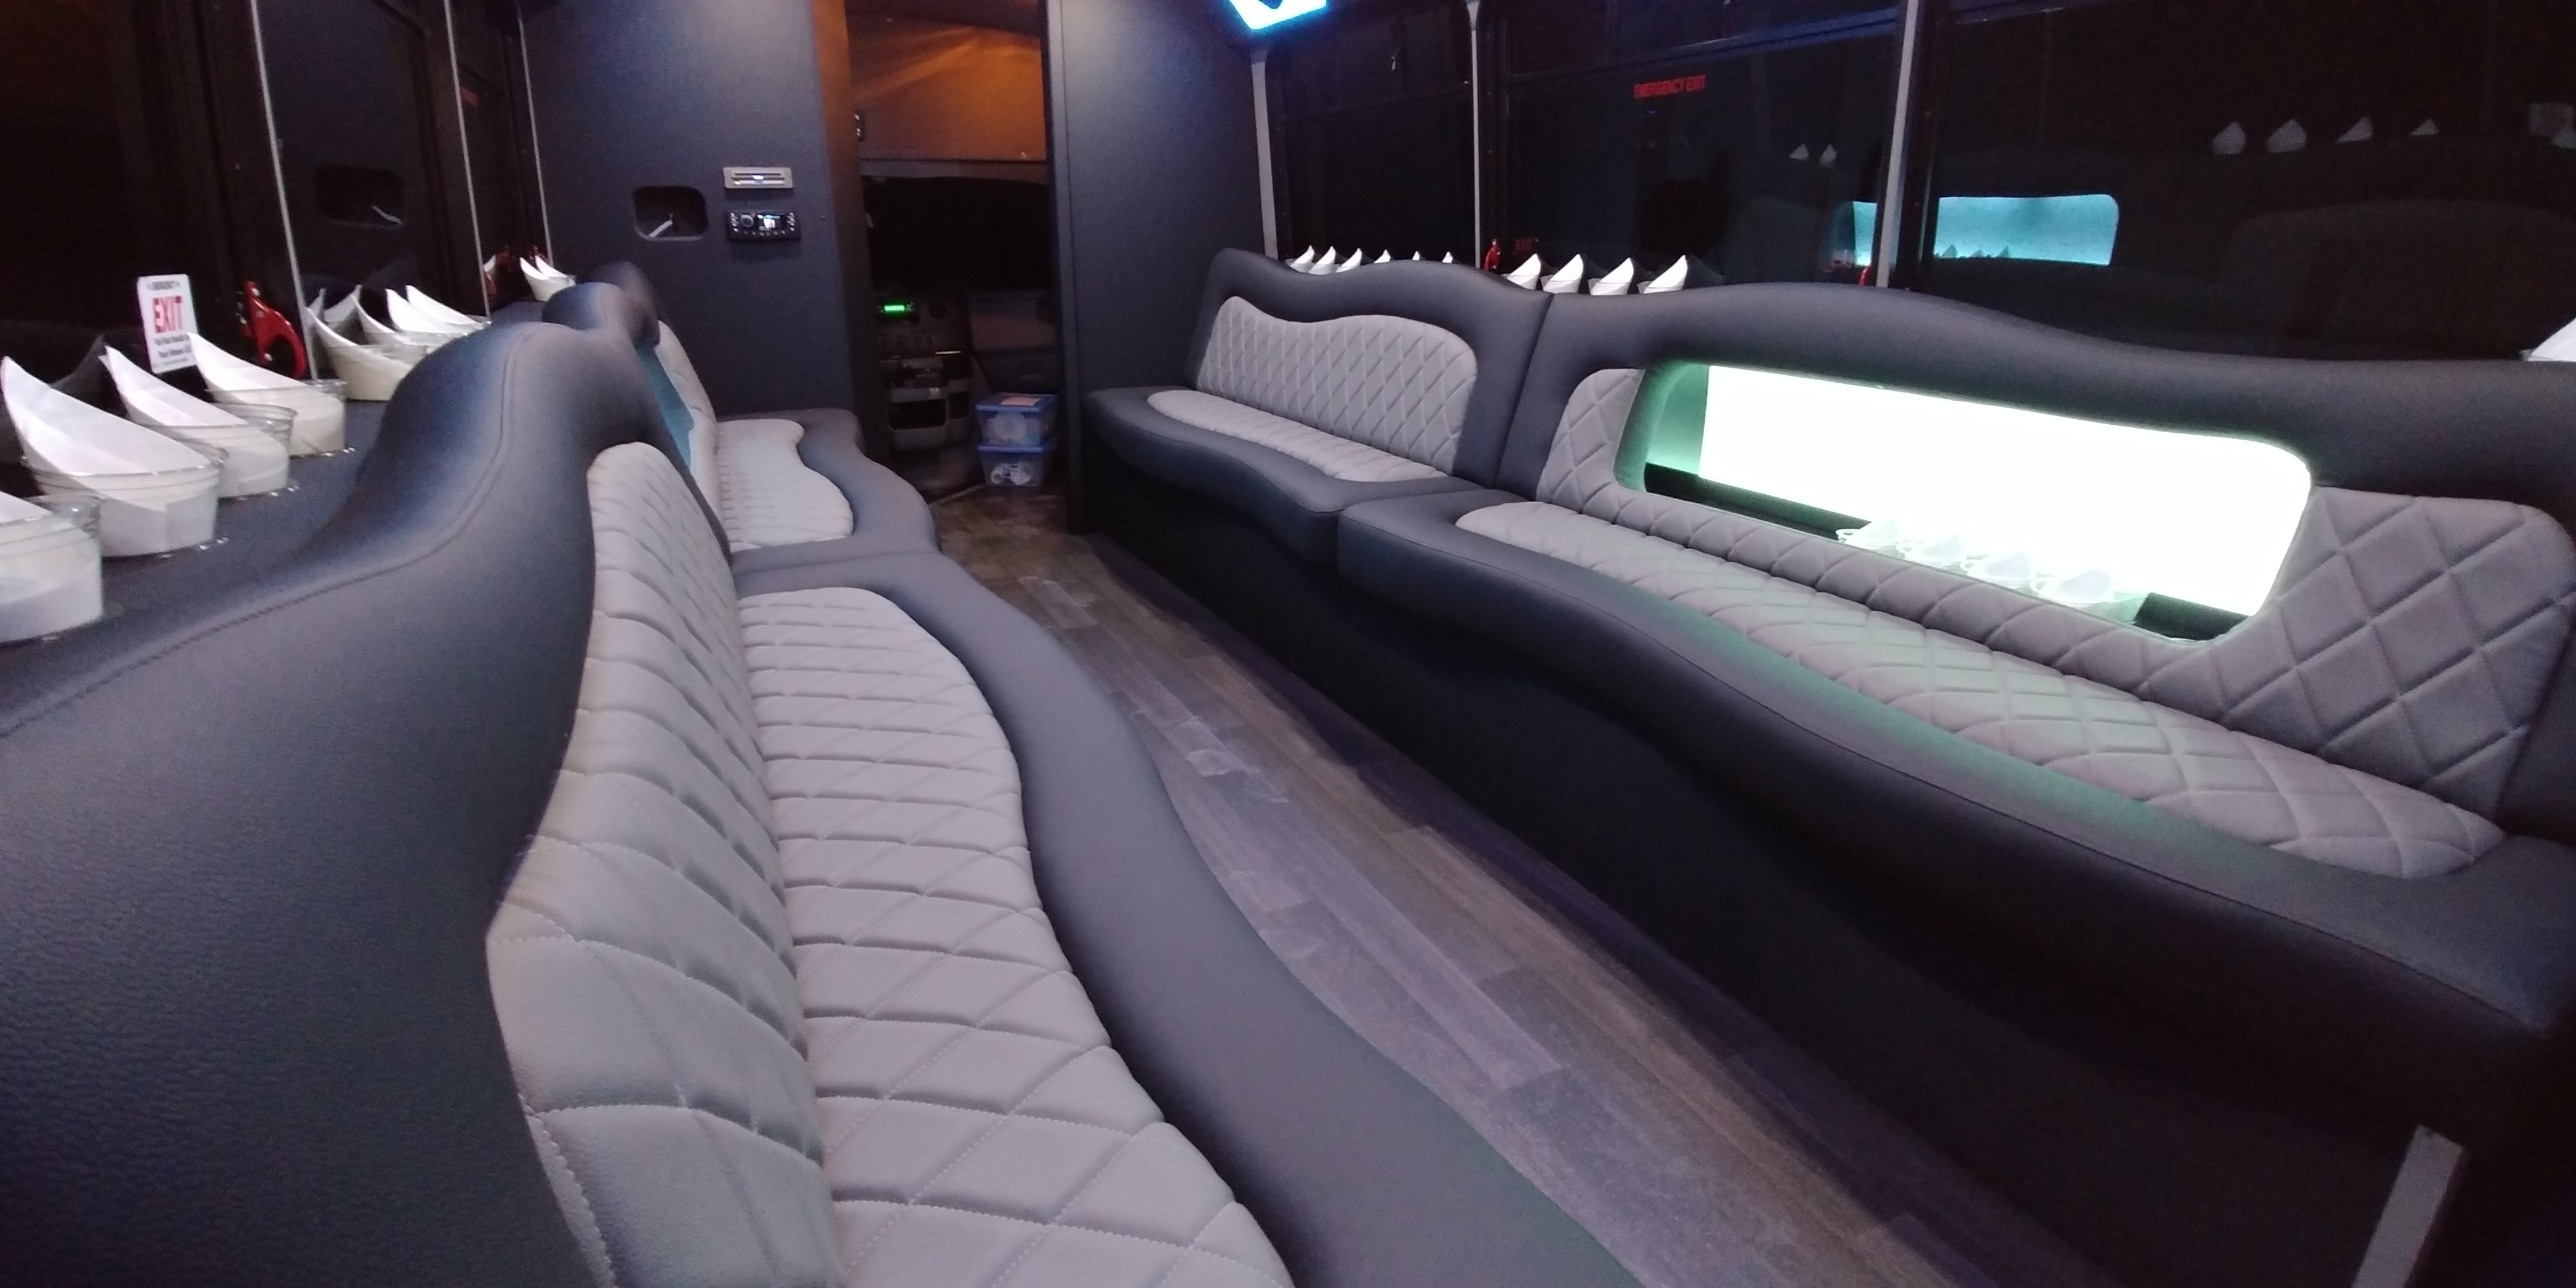 18 Passenger Luxury Limo Bus Nighttime Interior 6